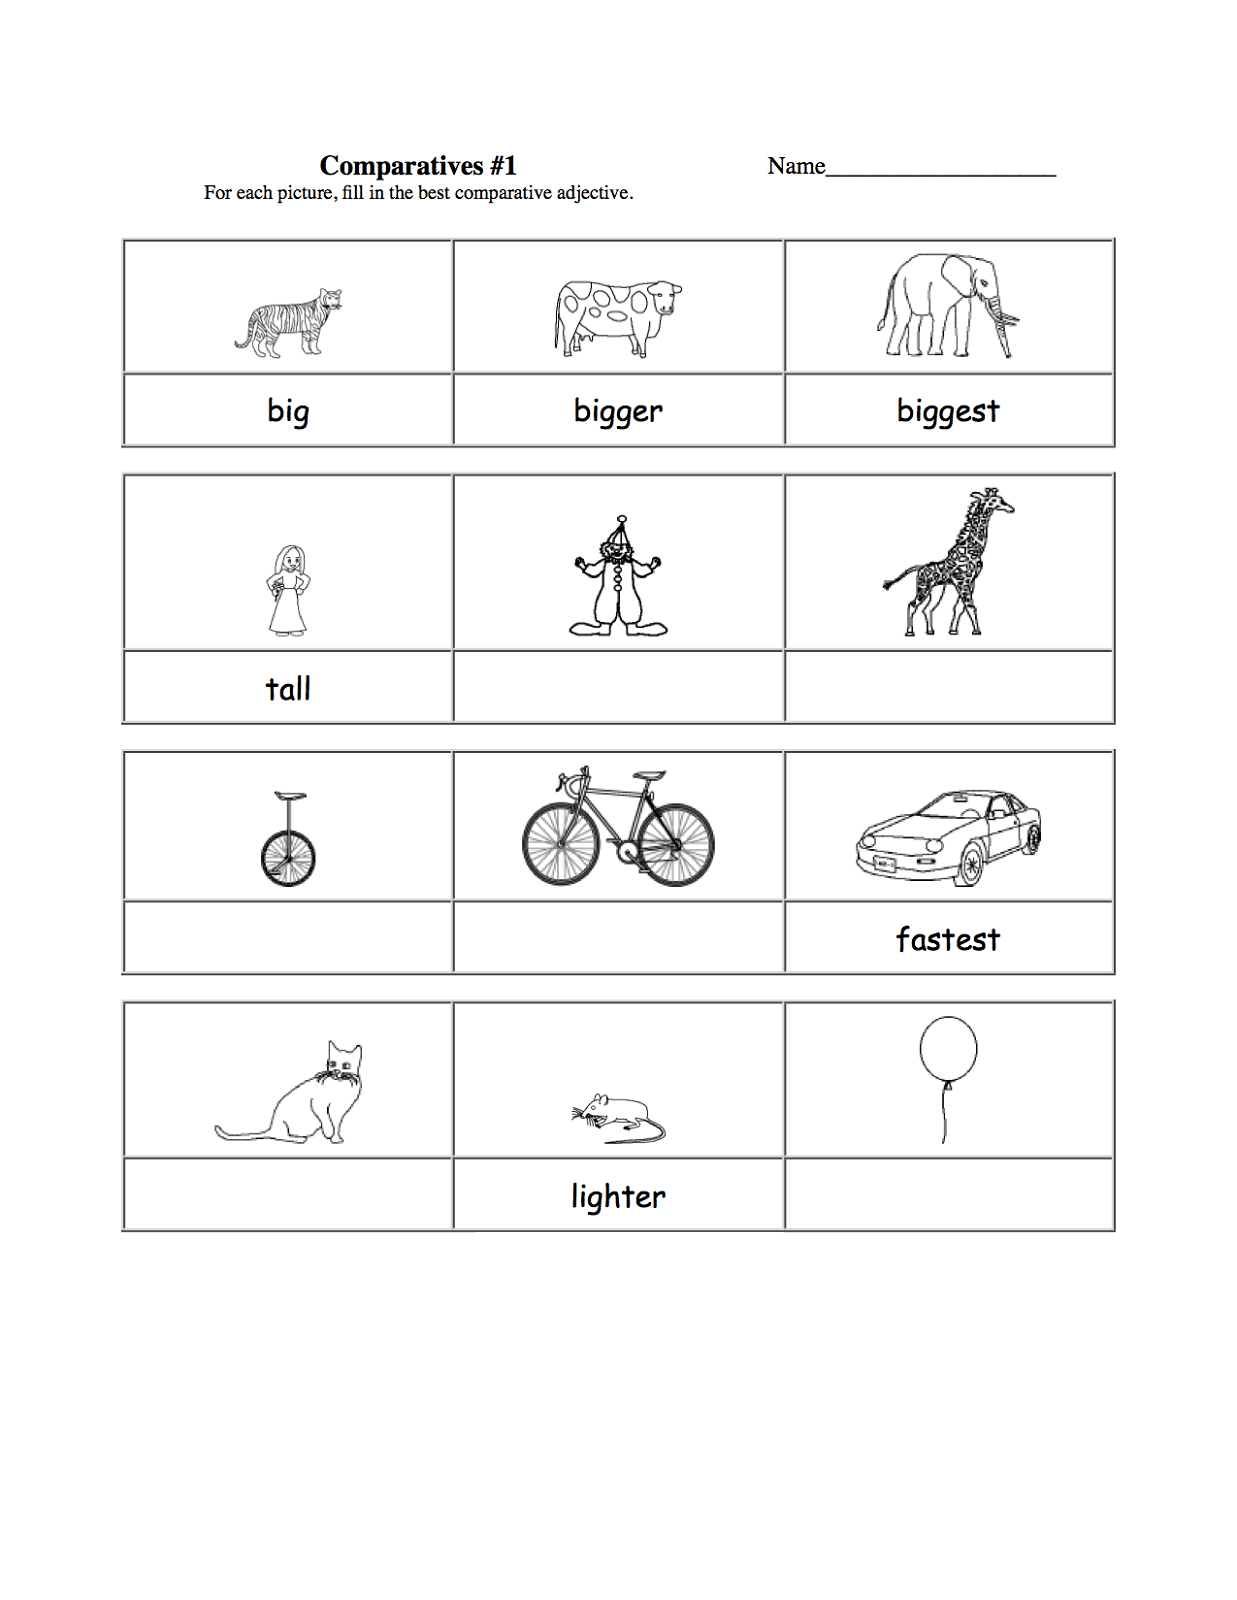 worksheets for 5 year olds comparison - Printable Worksheets For 2 Year Olds